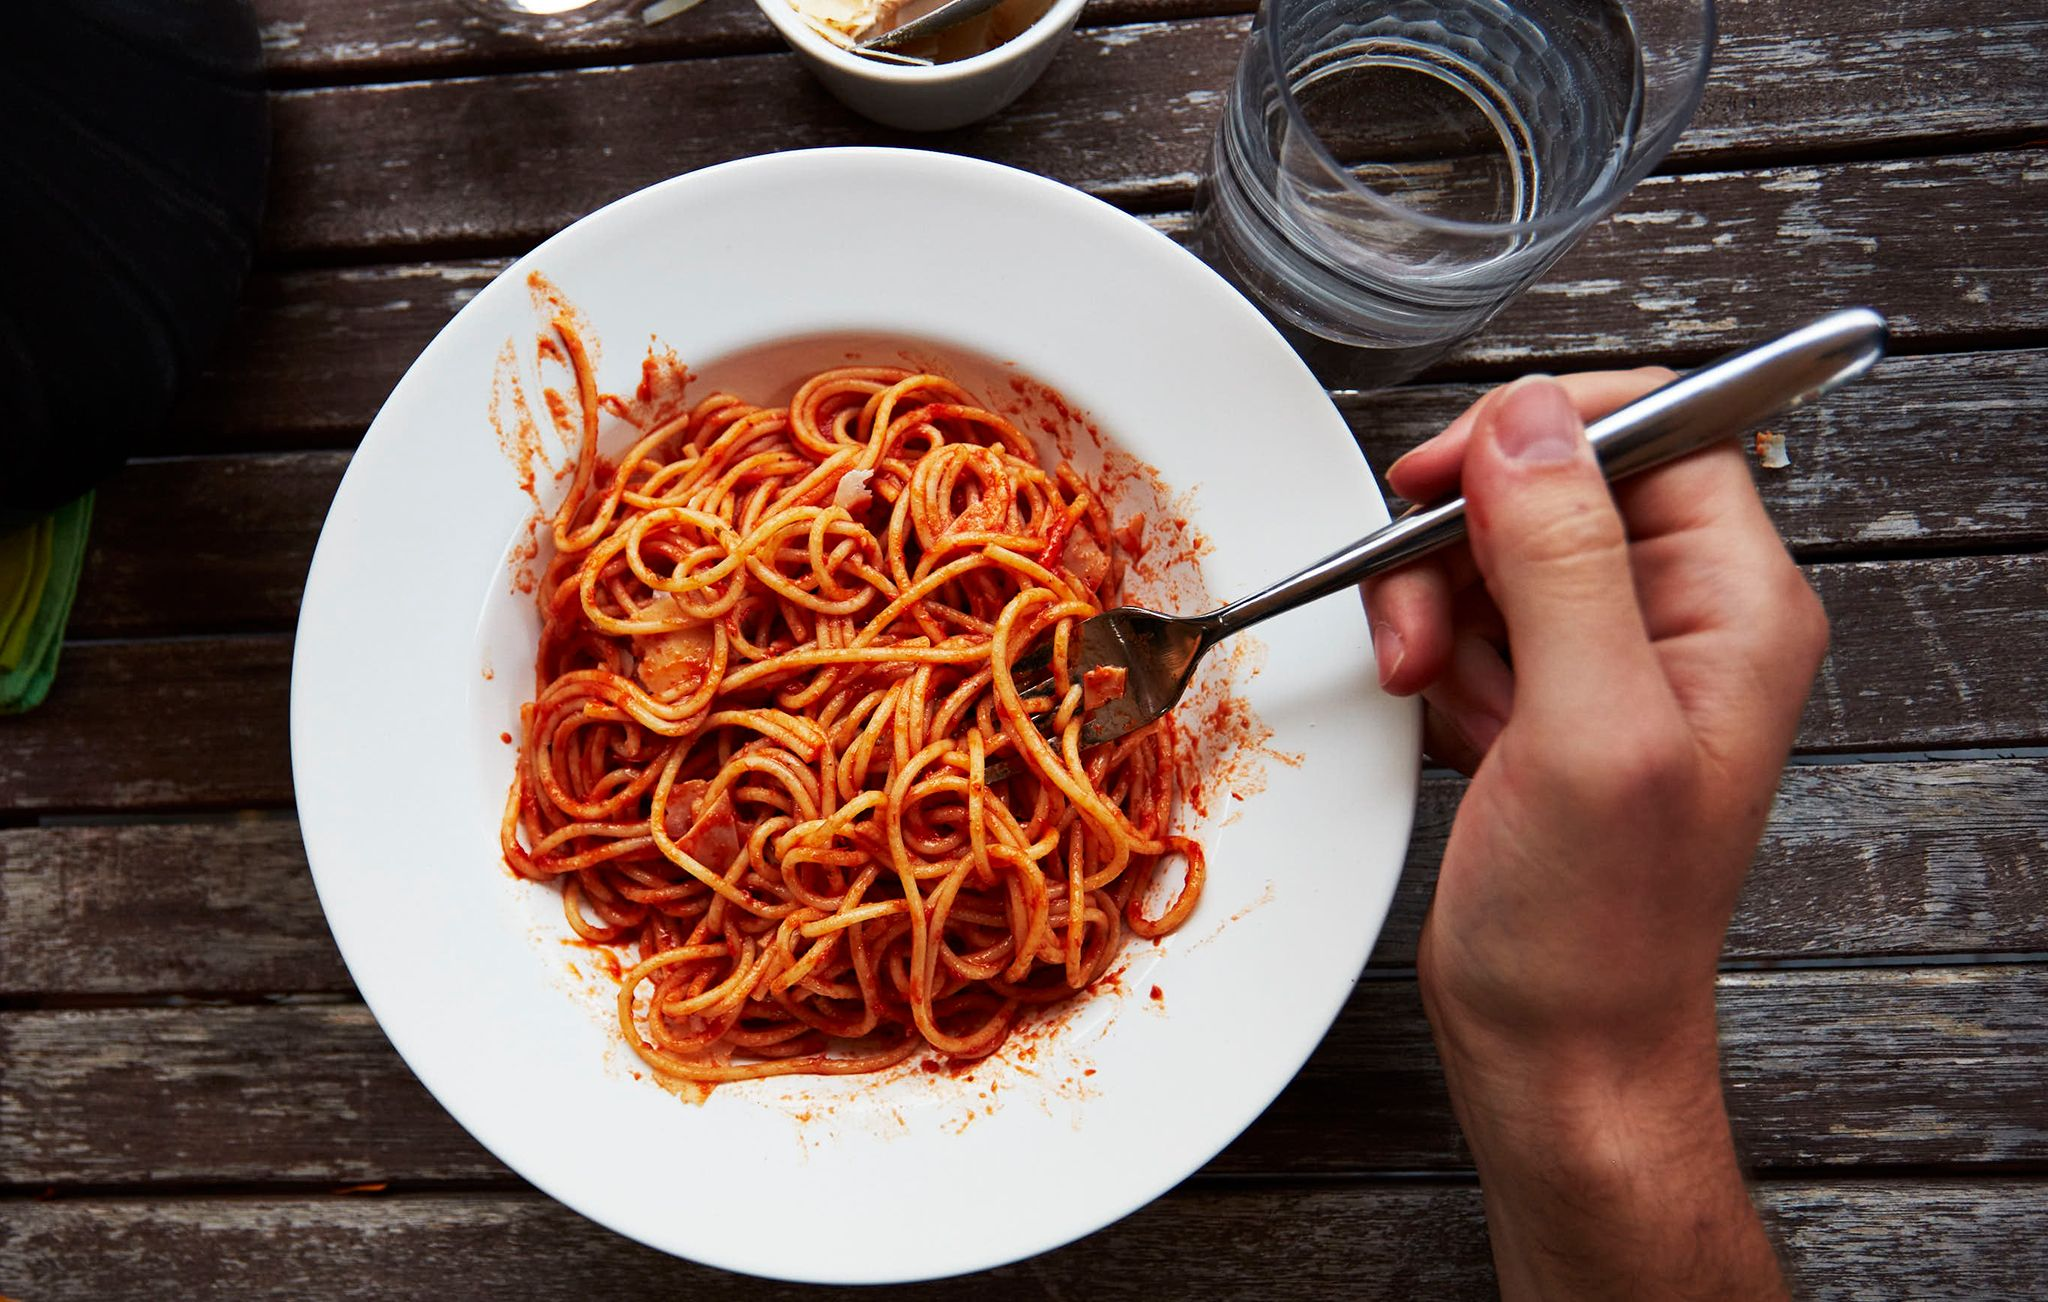 Carbs aren't just for before races - they're essential for recovery, too